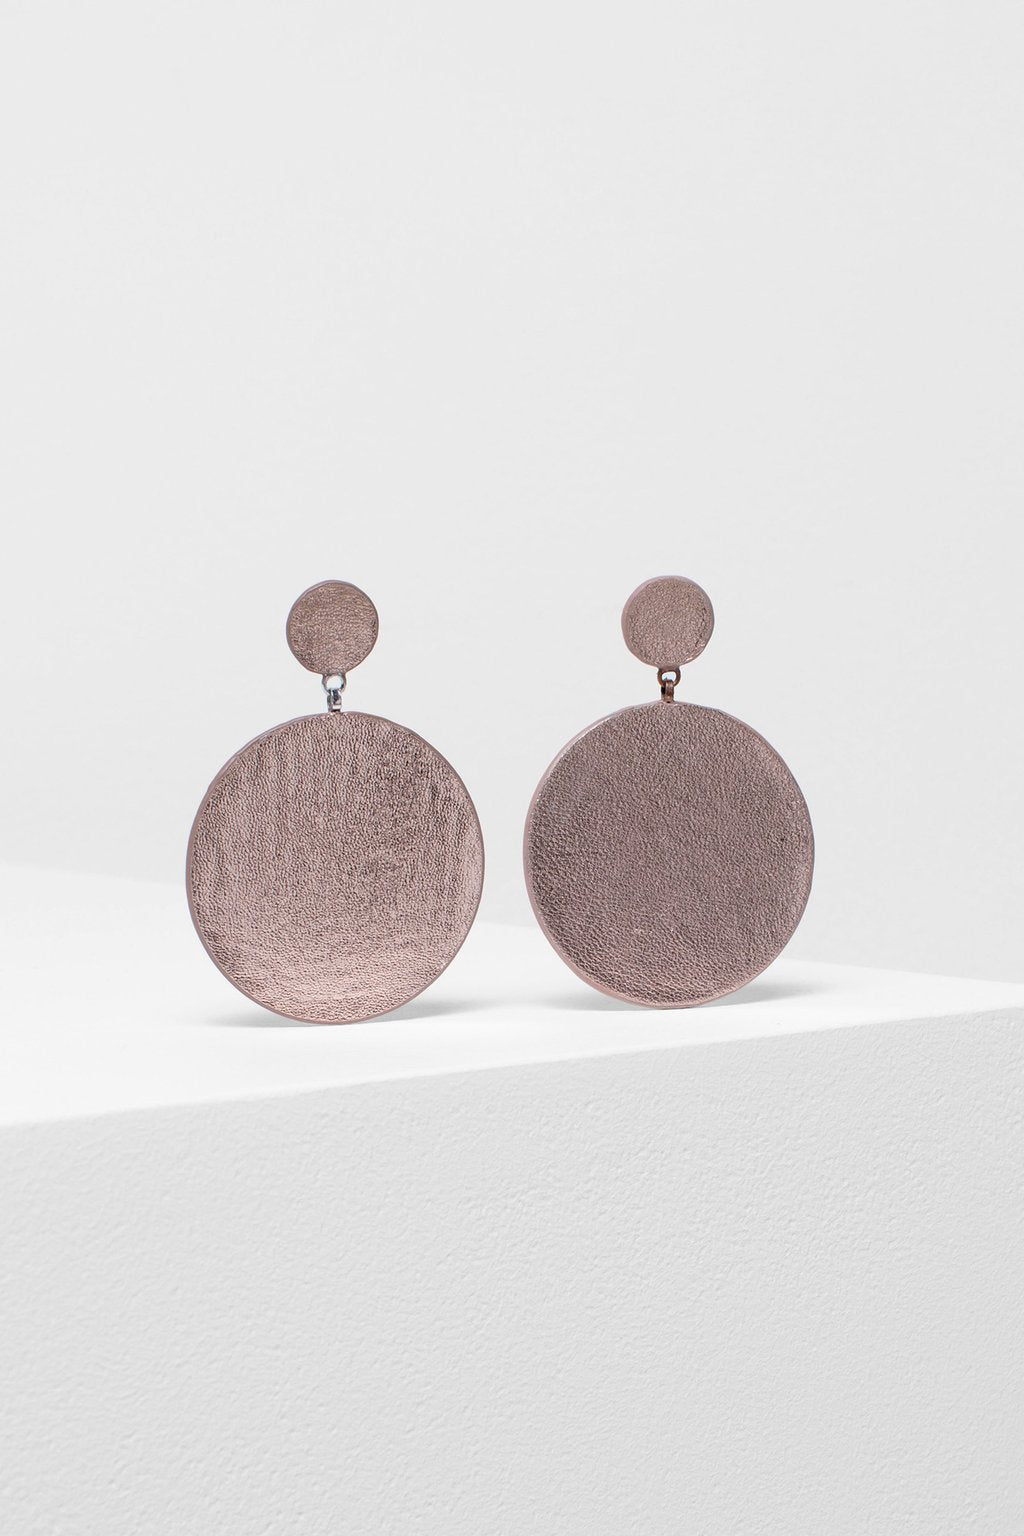 Elk Salla Earrings E0665 Rose Gold